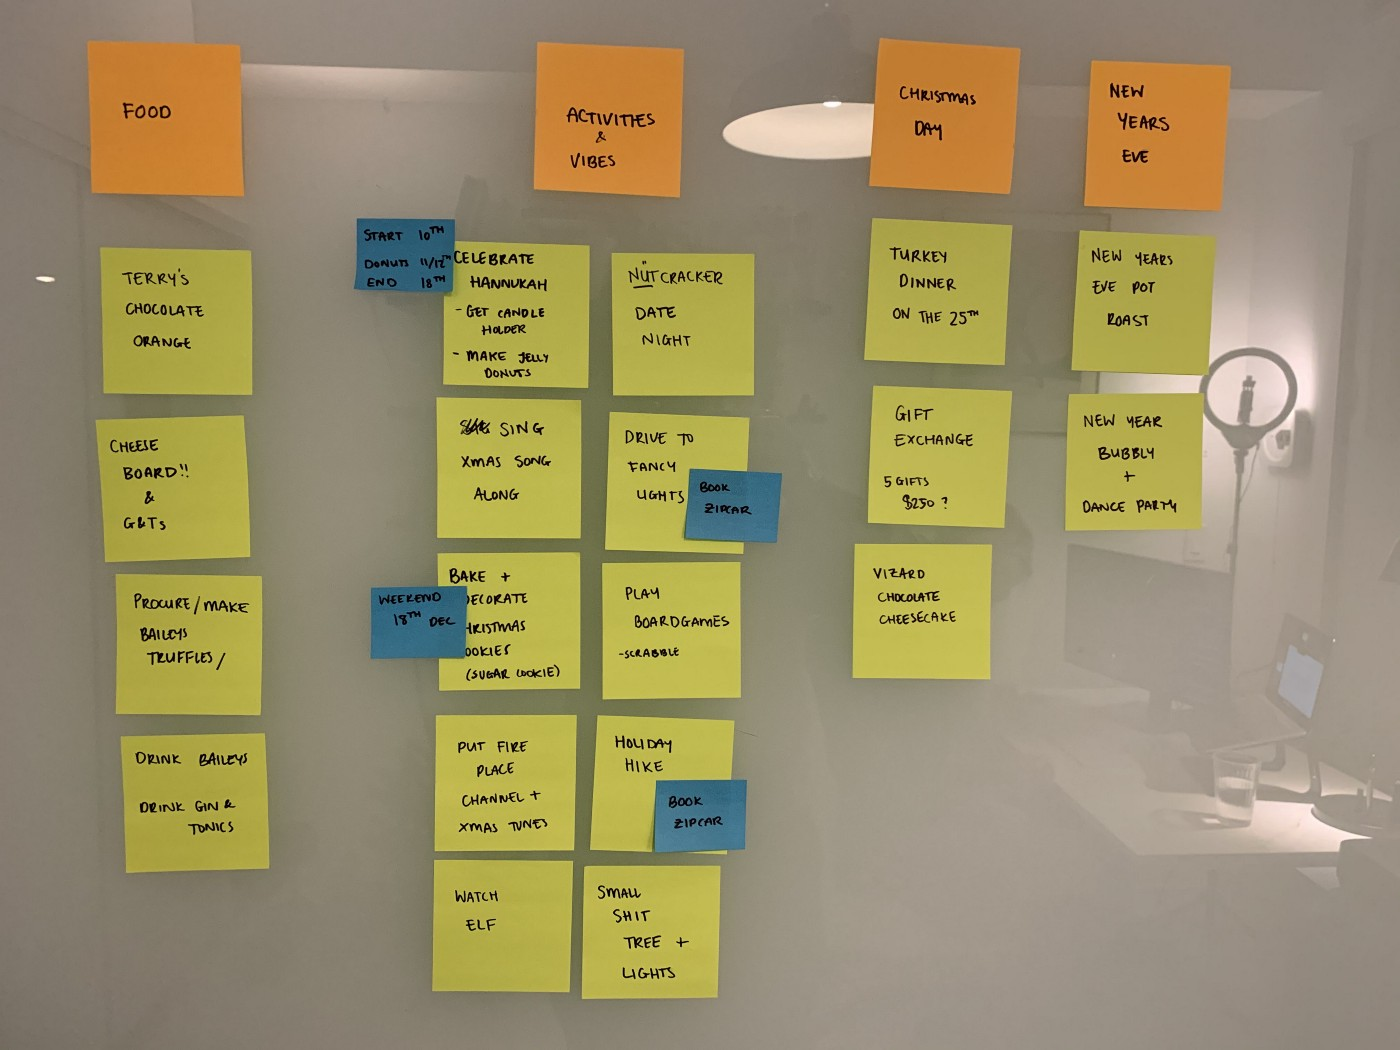 a kanban board of post it notes with the headings food, activities and vibes, christmas day, and new years eve